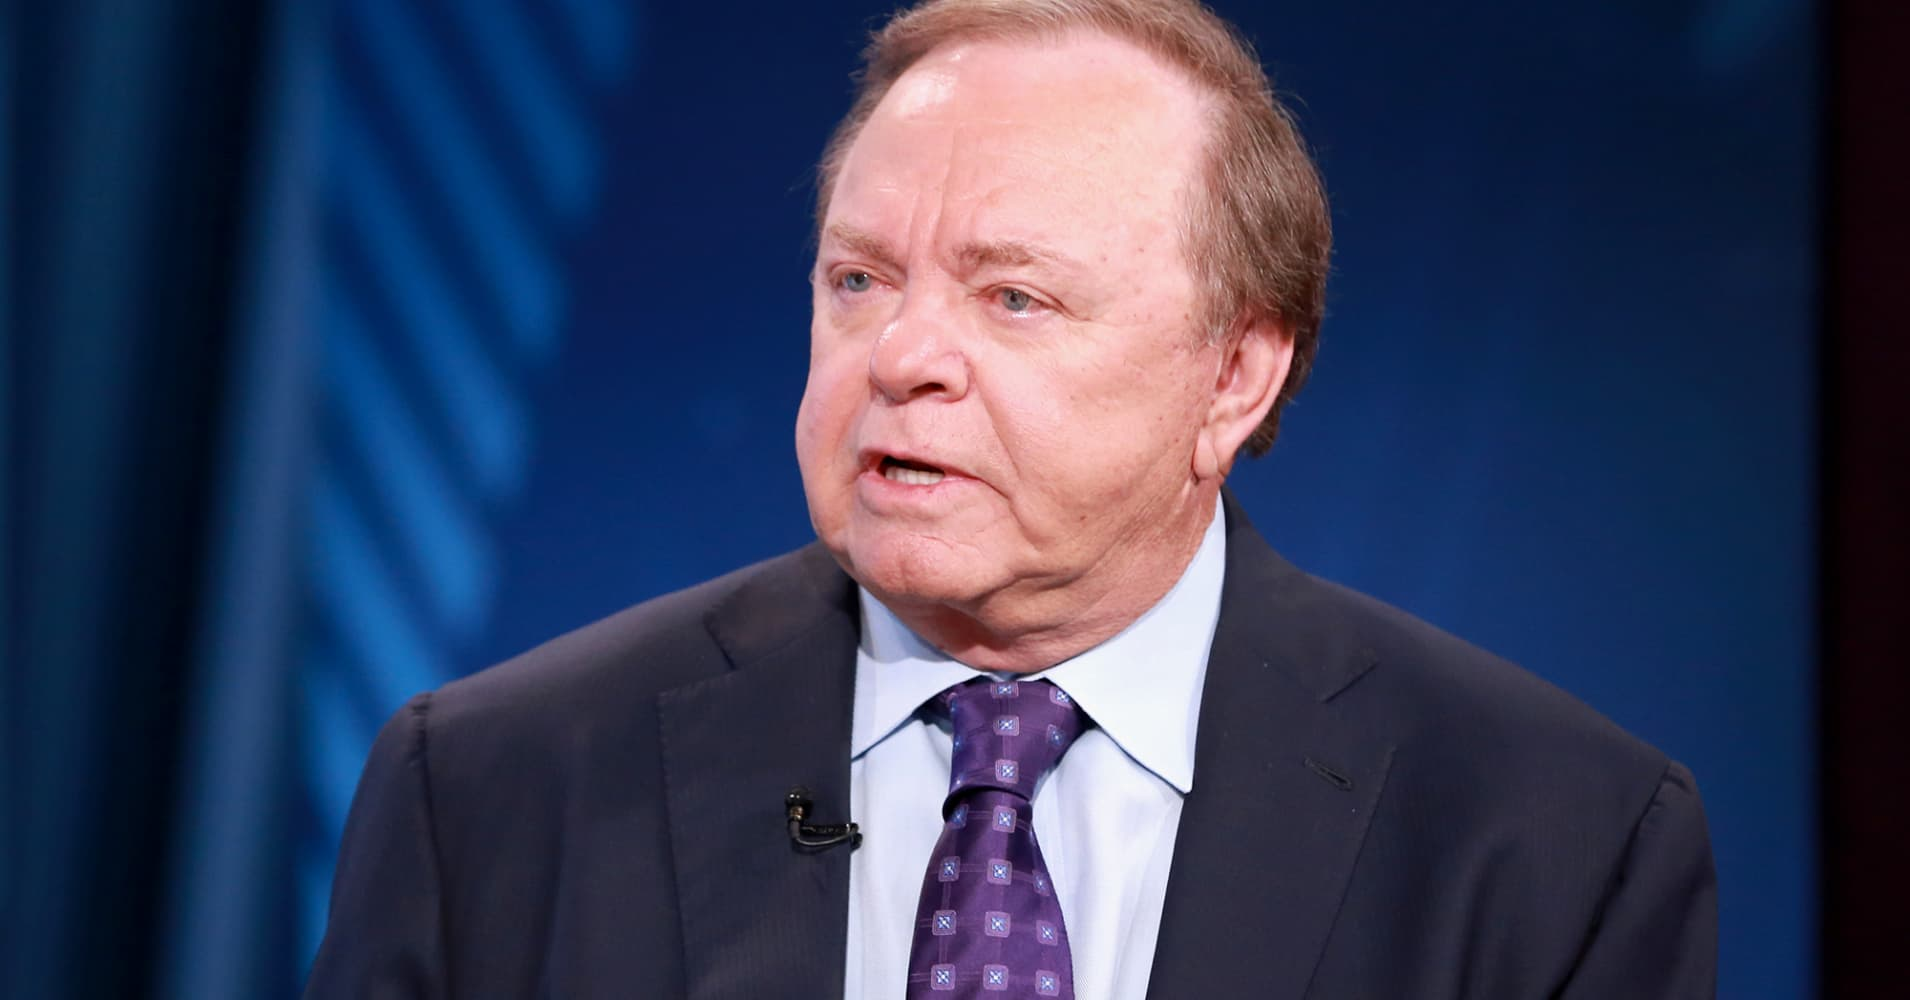 Oil drillers will spend cautiously even as GOP eyes corporate tax cuts, says billionaire oilman Harold Hamm